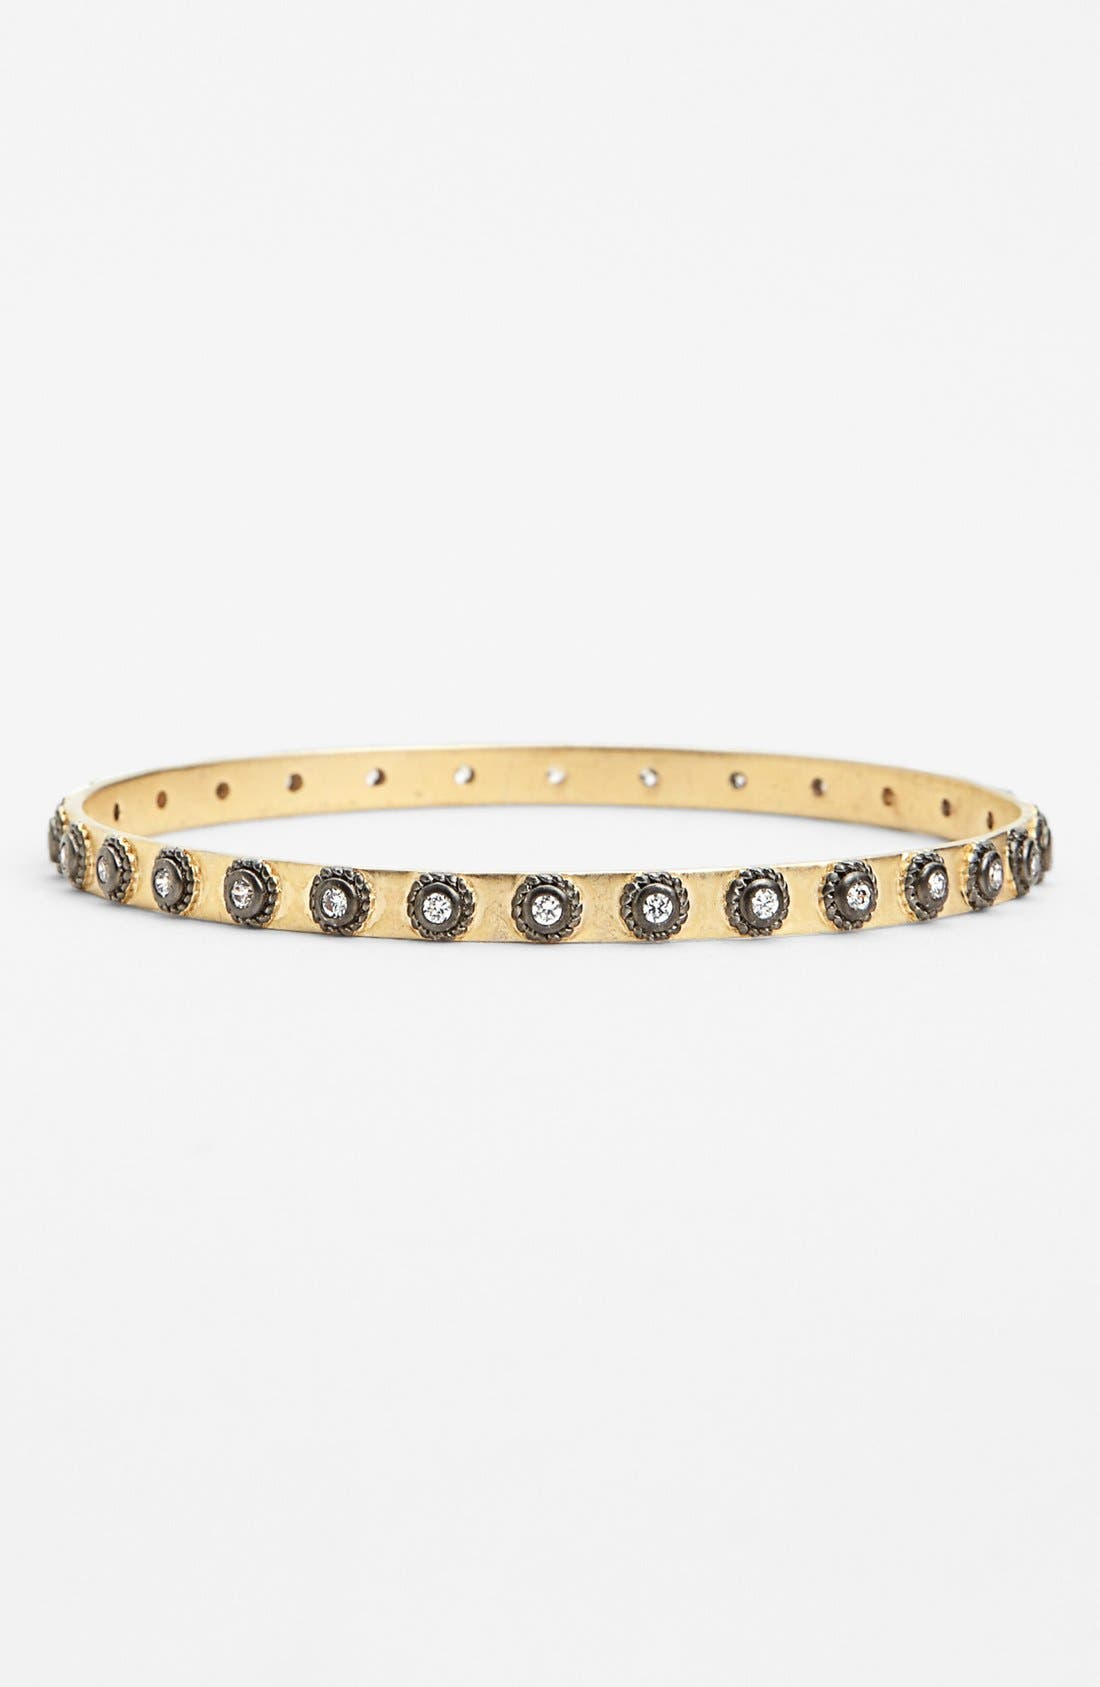 Main Image - FREIDA ROTHMAN 'Tribeca' Studded Bangle